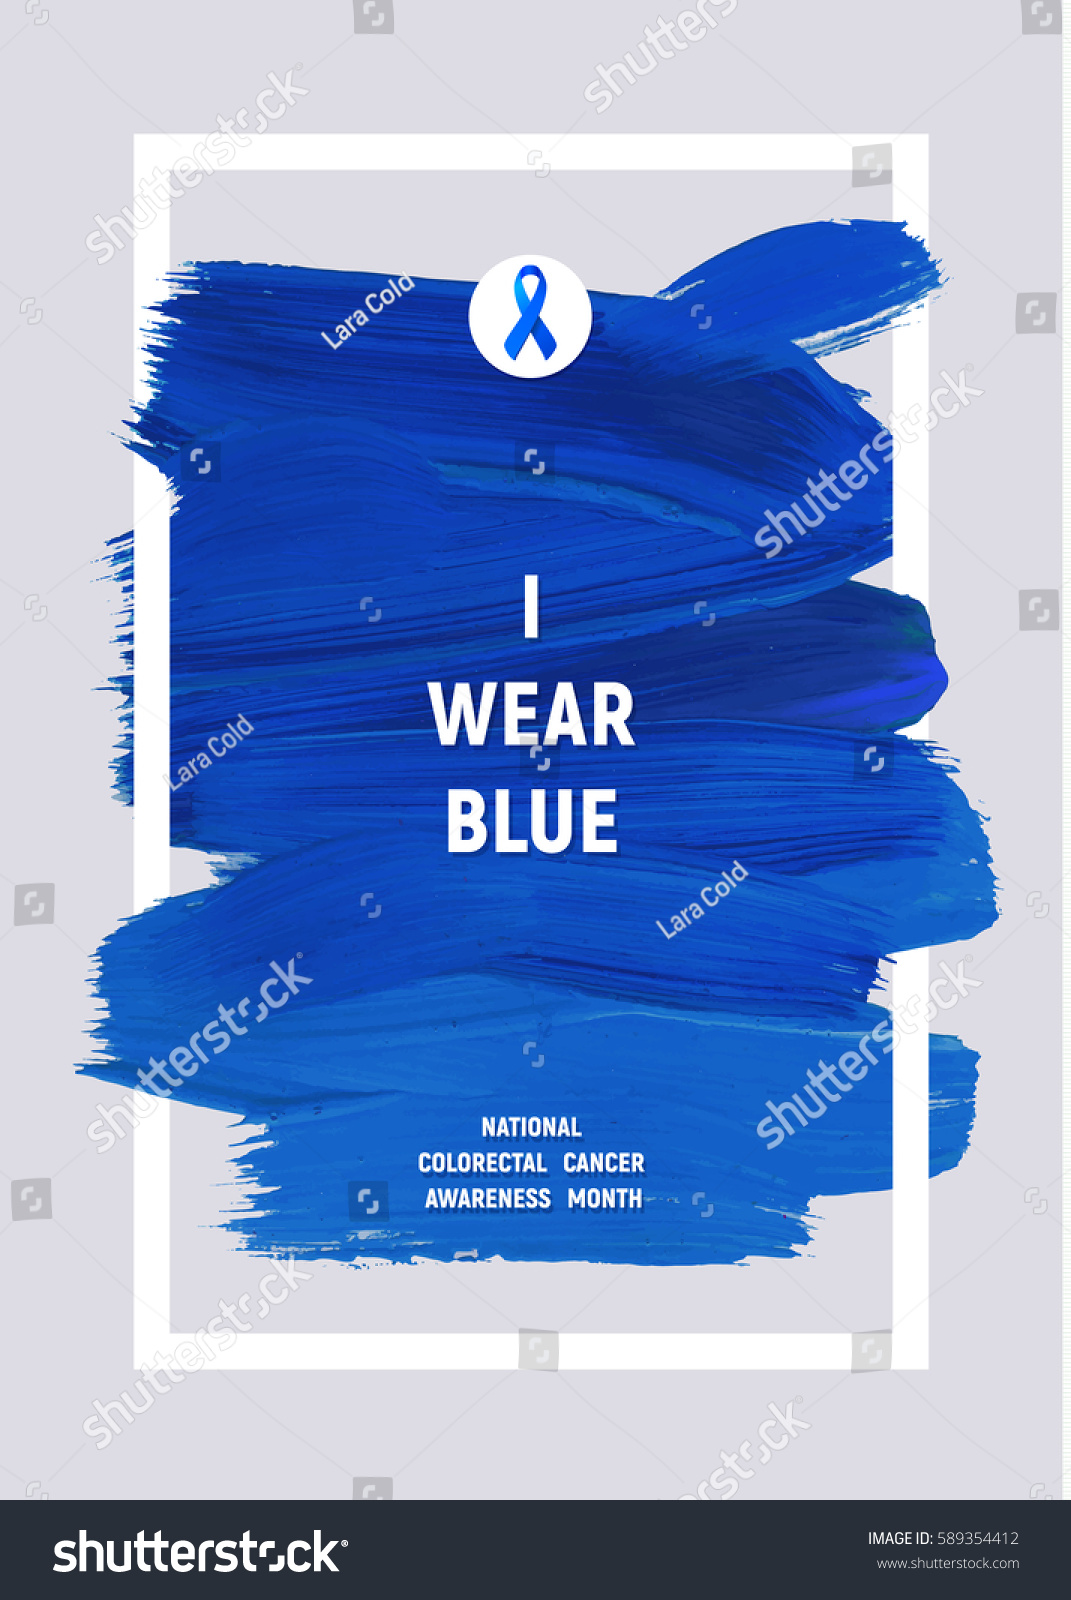 Colorectal cancer awareness creative grey blue stock vector colorectal cancer awareness creative grey and blue poster brush stroke and silk ribbon symbol biocorpaavc